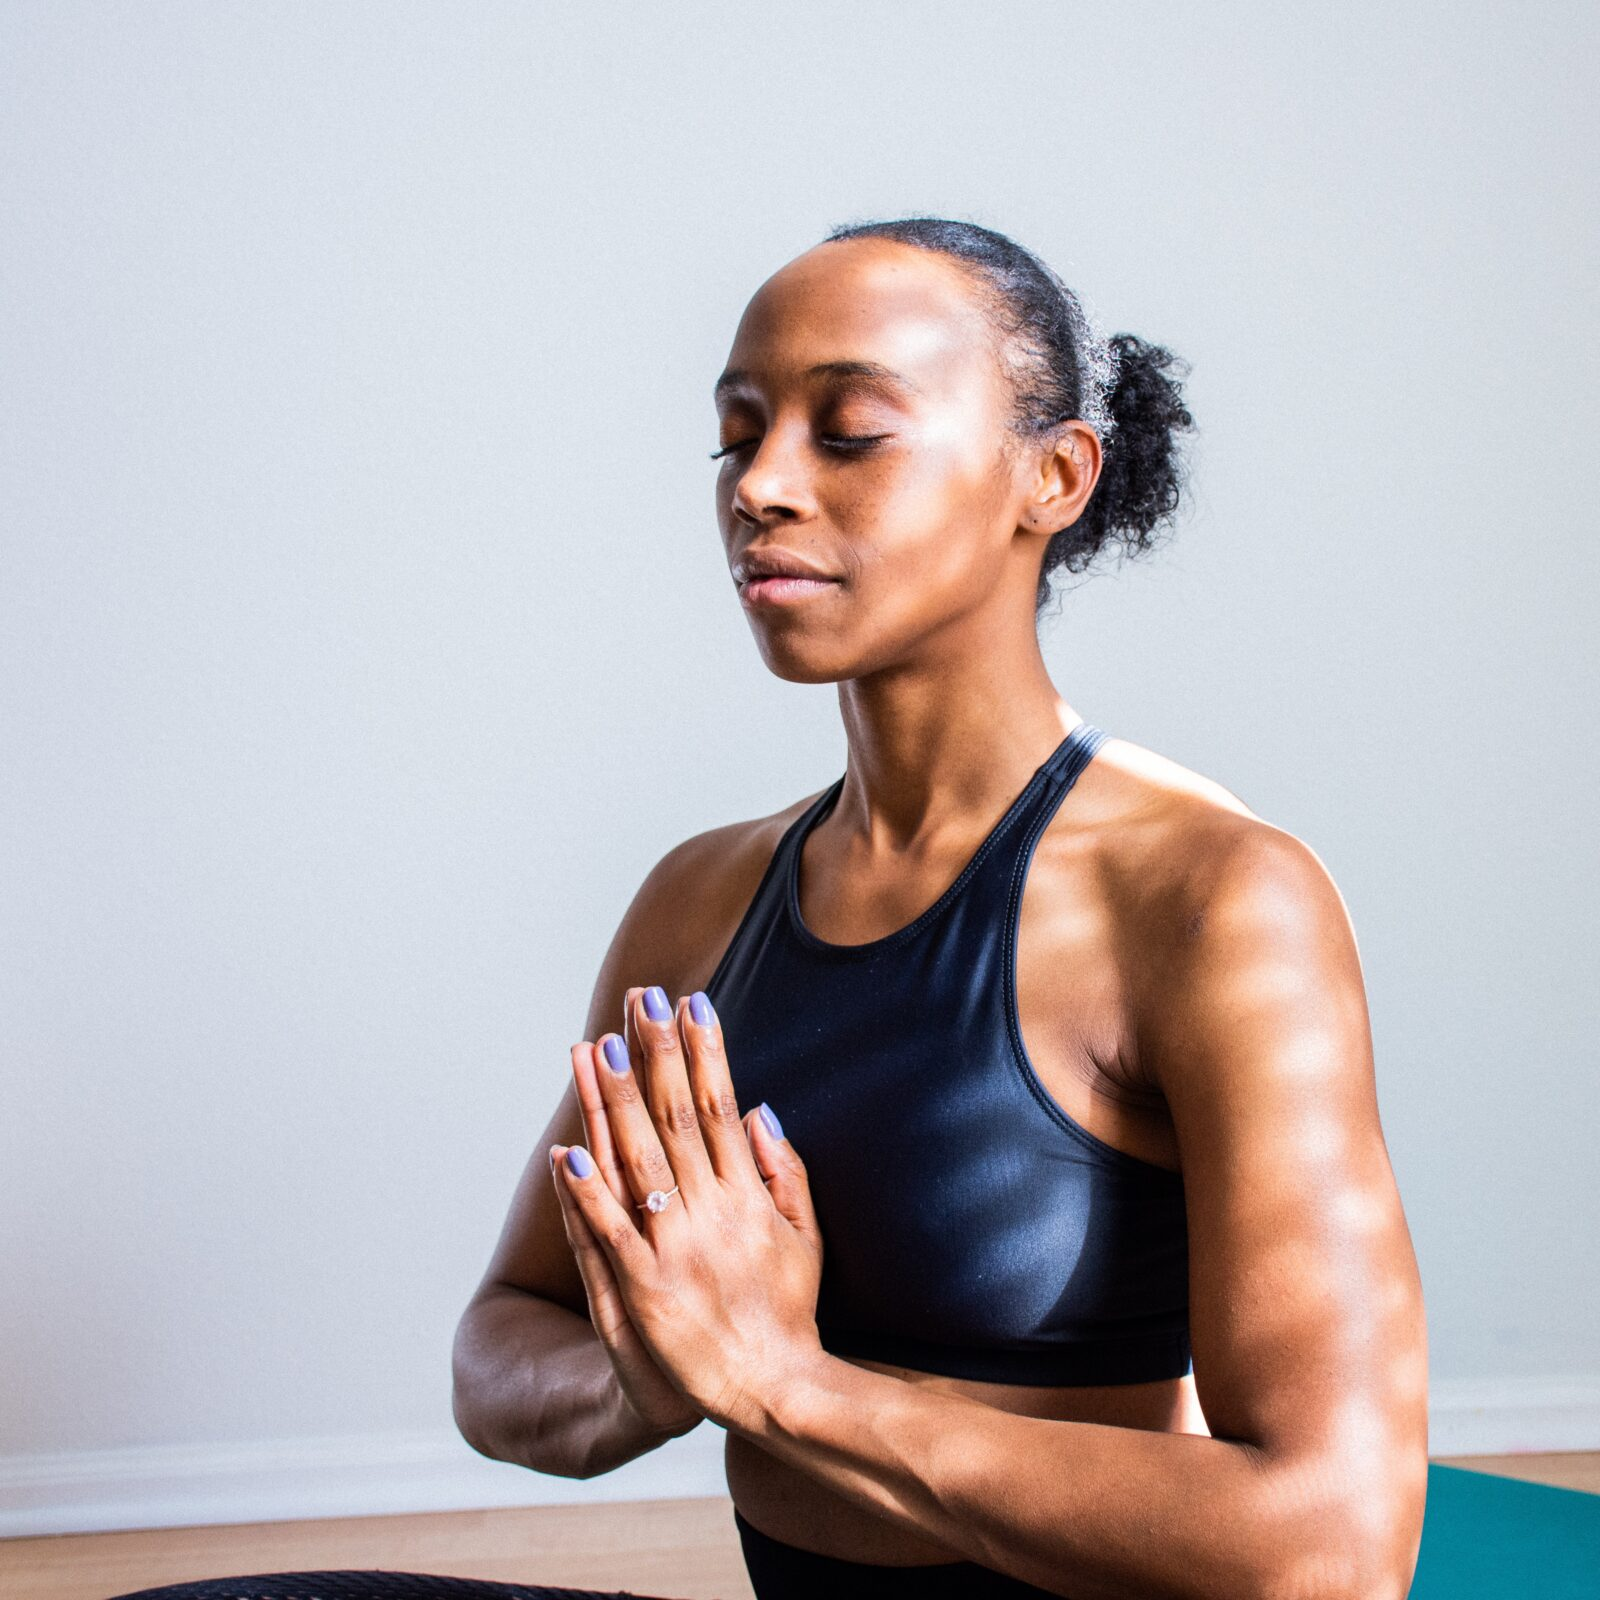 Black woman meditating with arms folded on chest